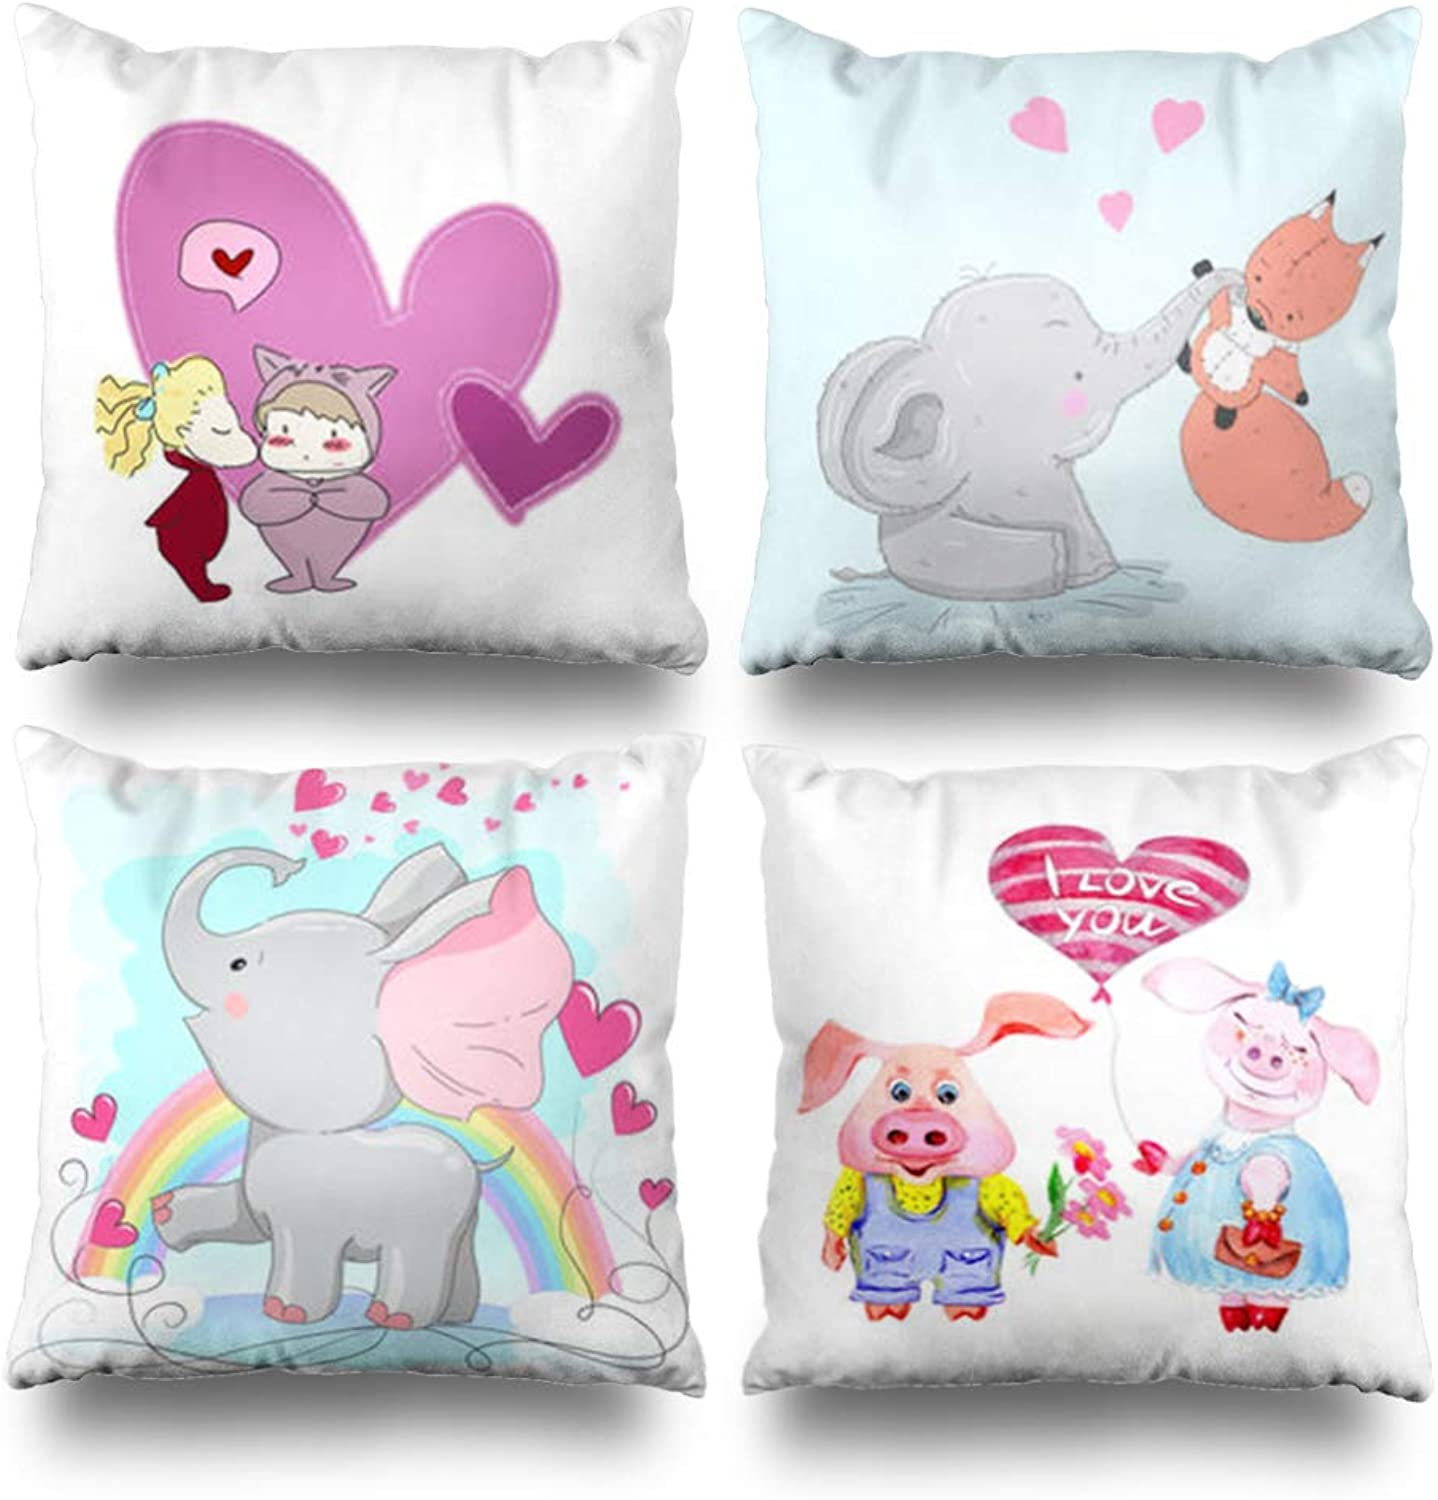 Set of 4 Decorativepillows Case Throw Pillows Covers for Couch Bed 18 x 18 inch, Cute Baby Cartoon Girl Boy Pink Home Sofa Cushion Cover Pillowcase Gift Bed Living Home